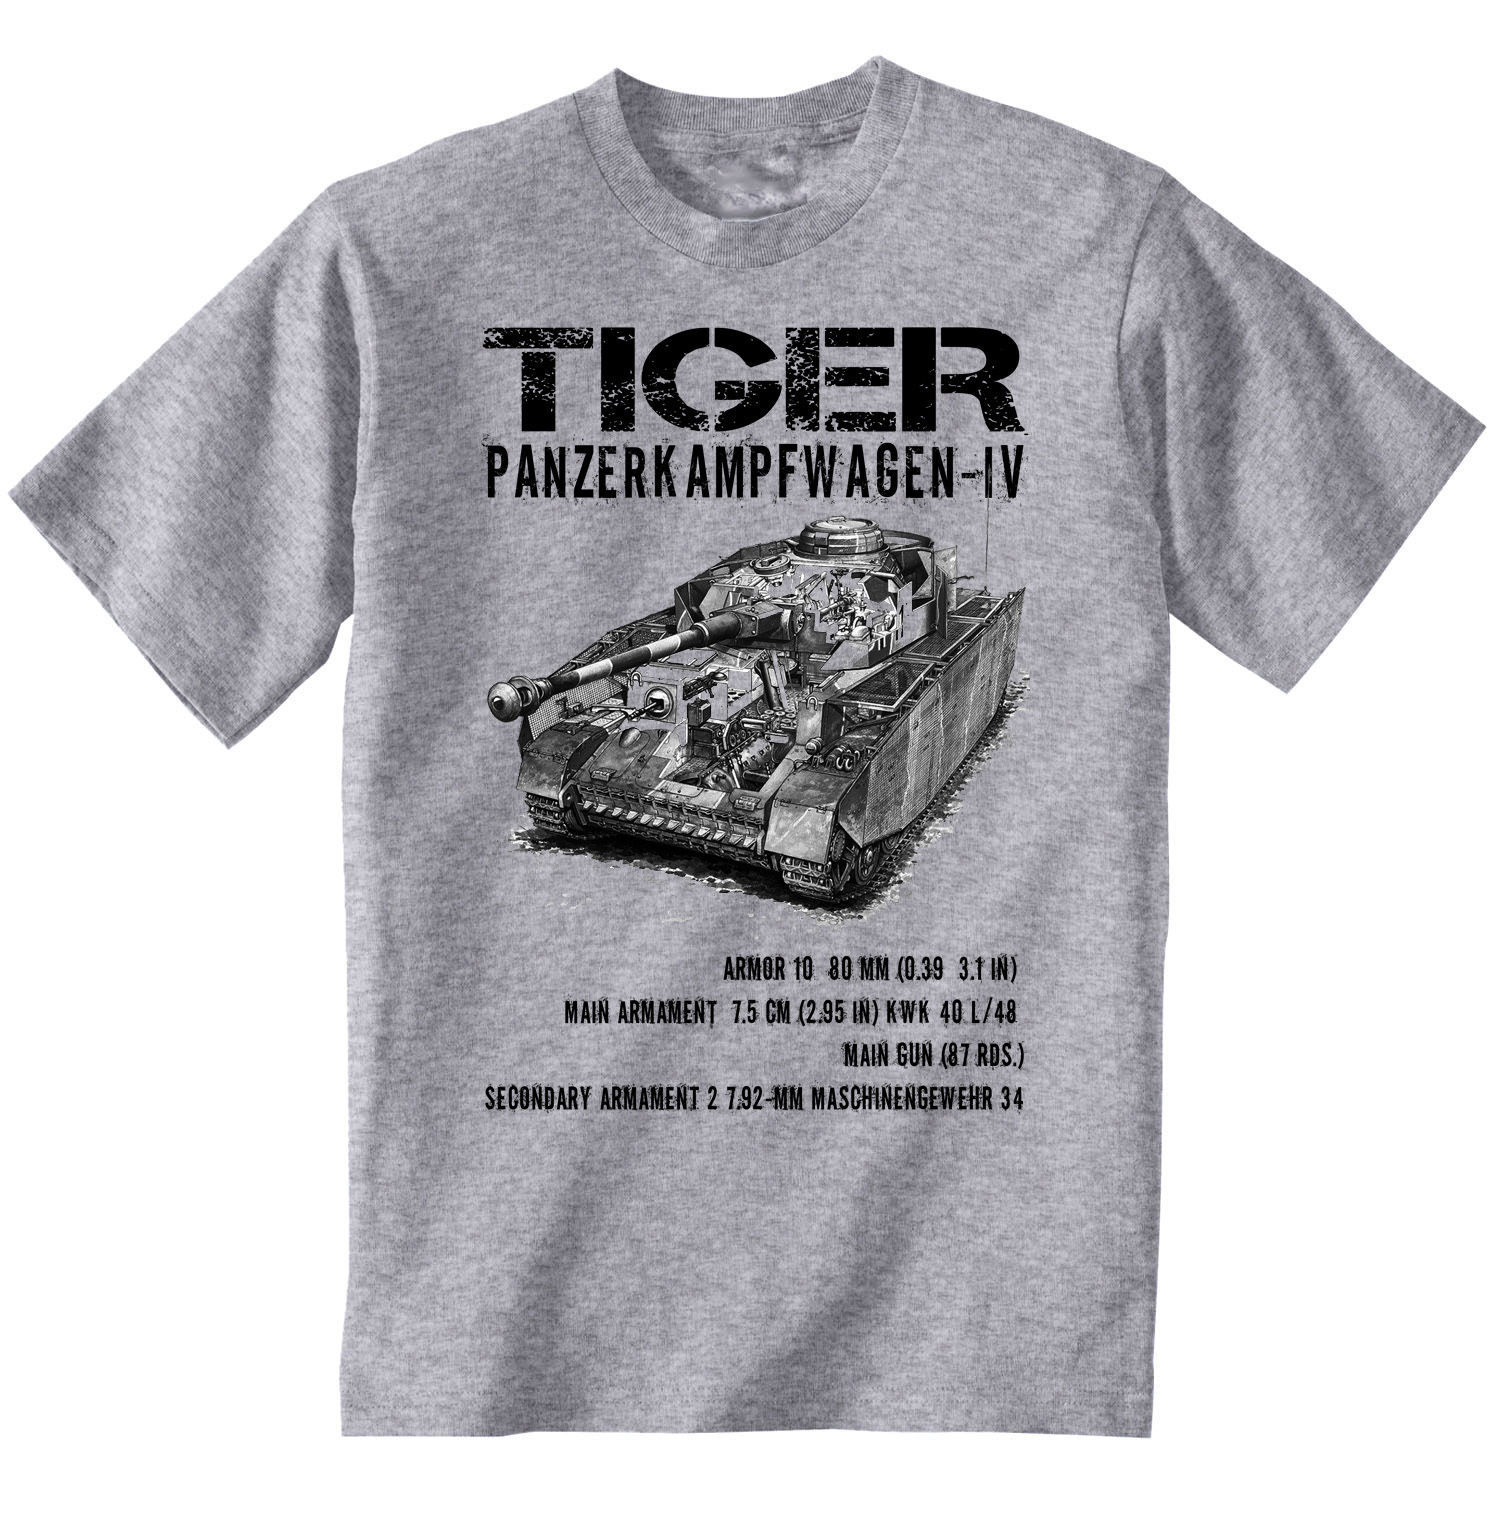 Primary image for TIGER PANZER IV WWII TANK 1 - NEW GRAPHIC GREY TSHIRT- S-M-L-XL-XXL